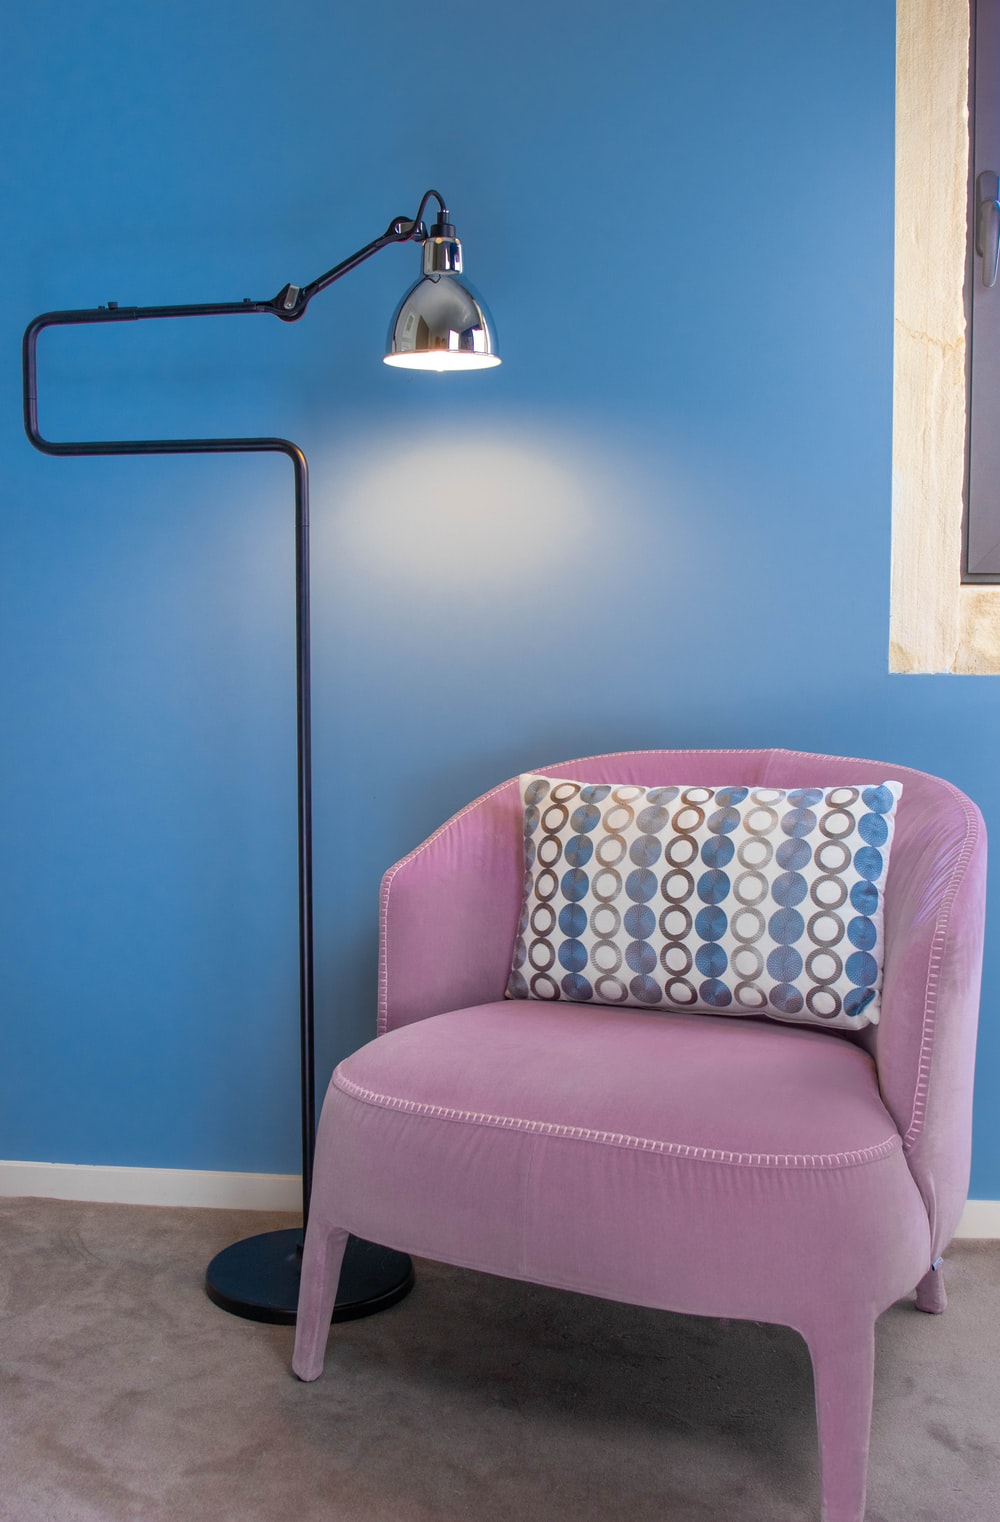 turned-on cantilever lamp beside sofa chair